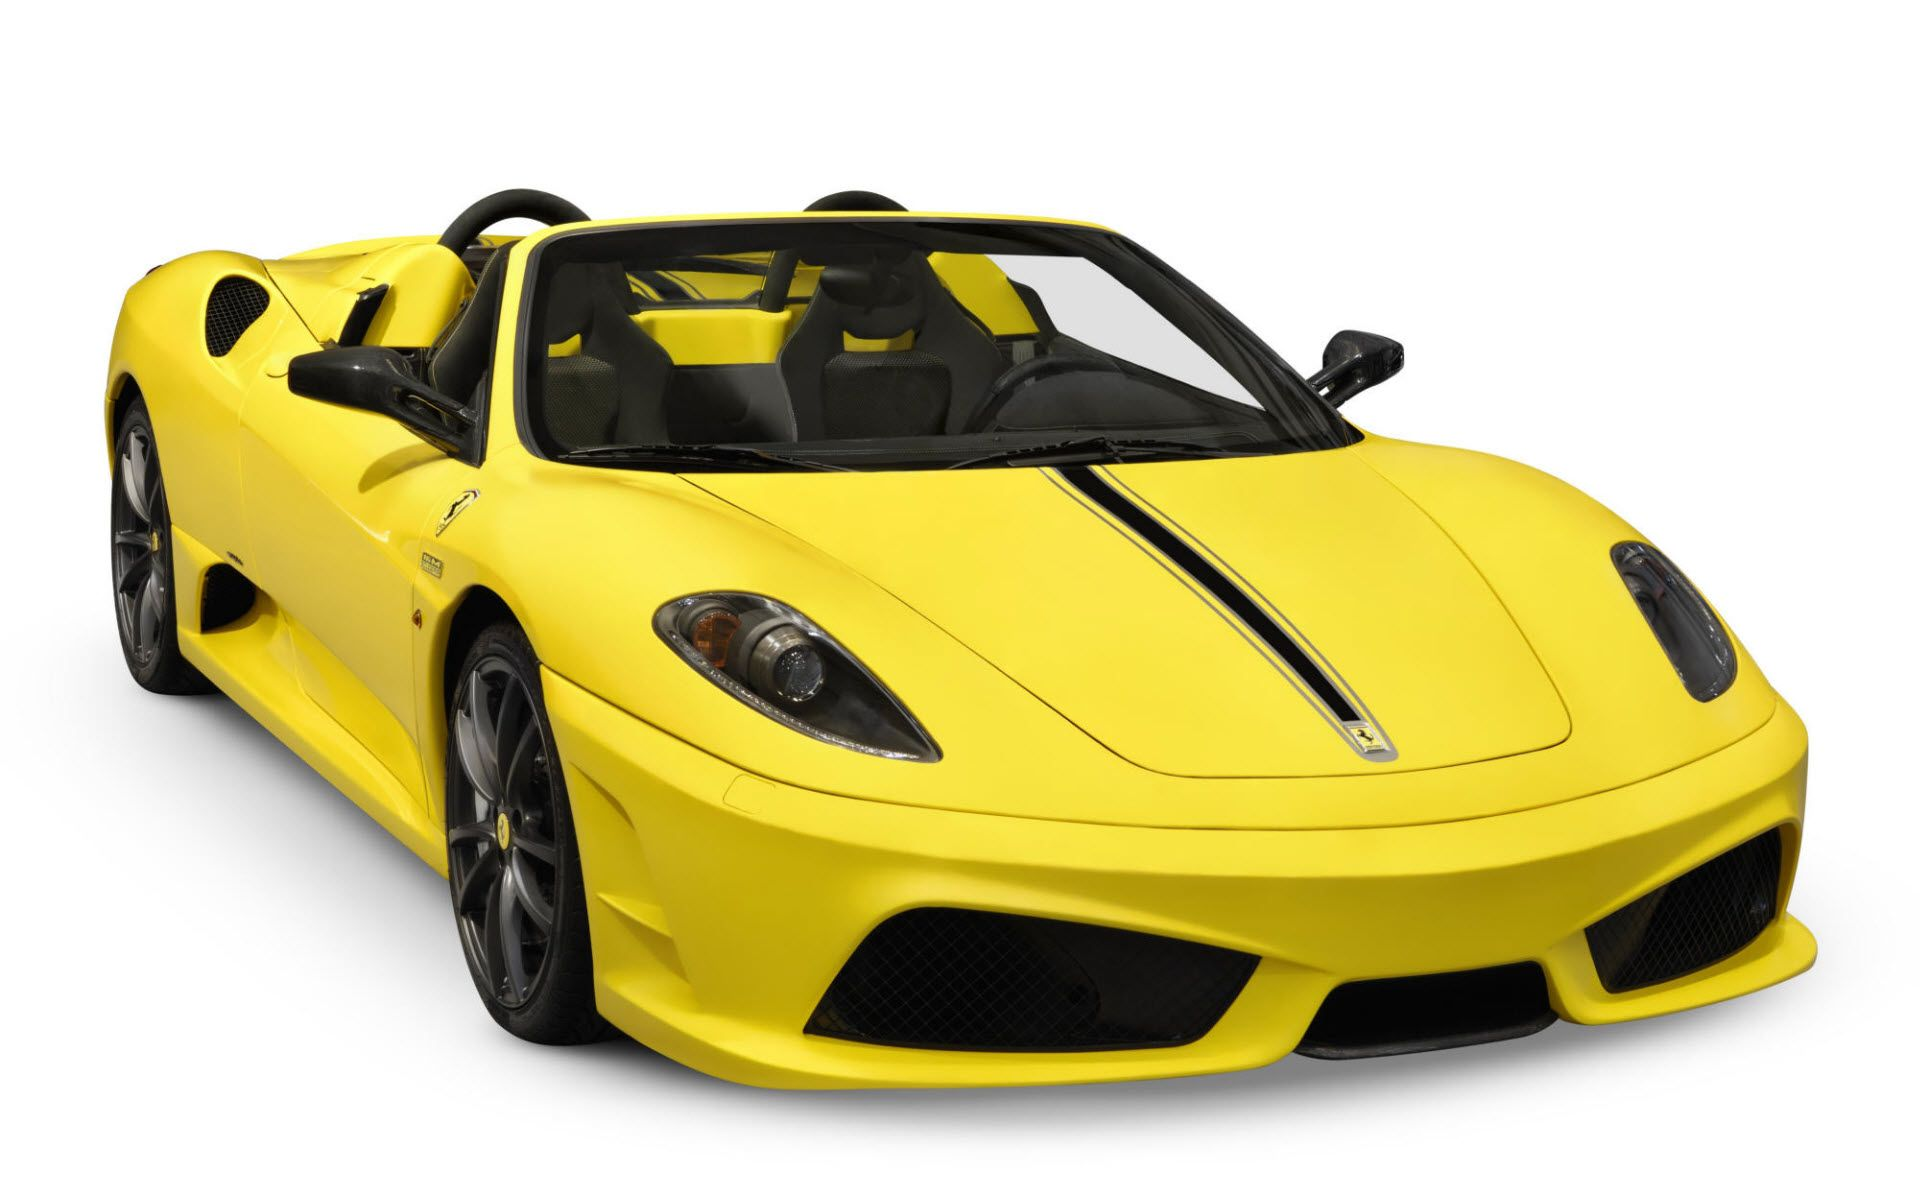 Amazing yellow ferrari sport cars cabriolet front right angle view wallpapers hd wallpapers in cars